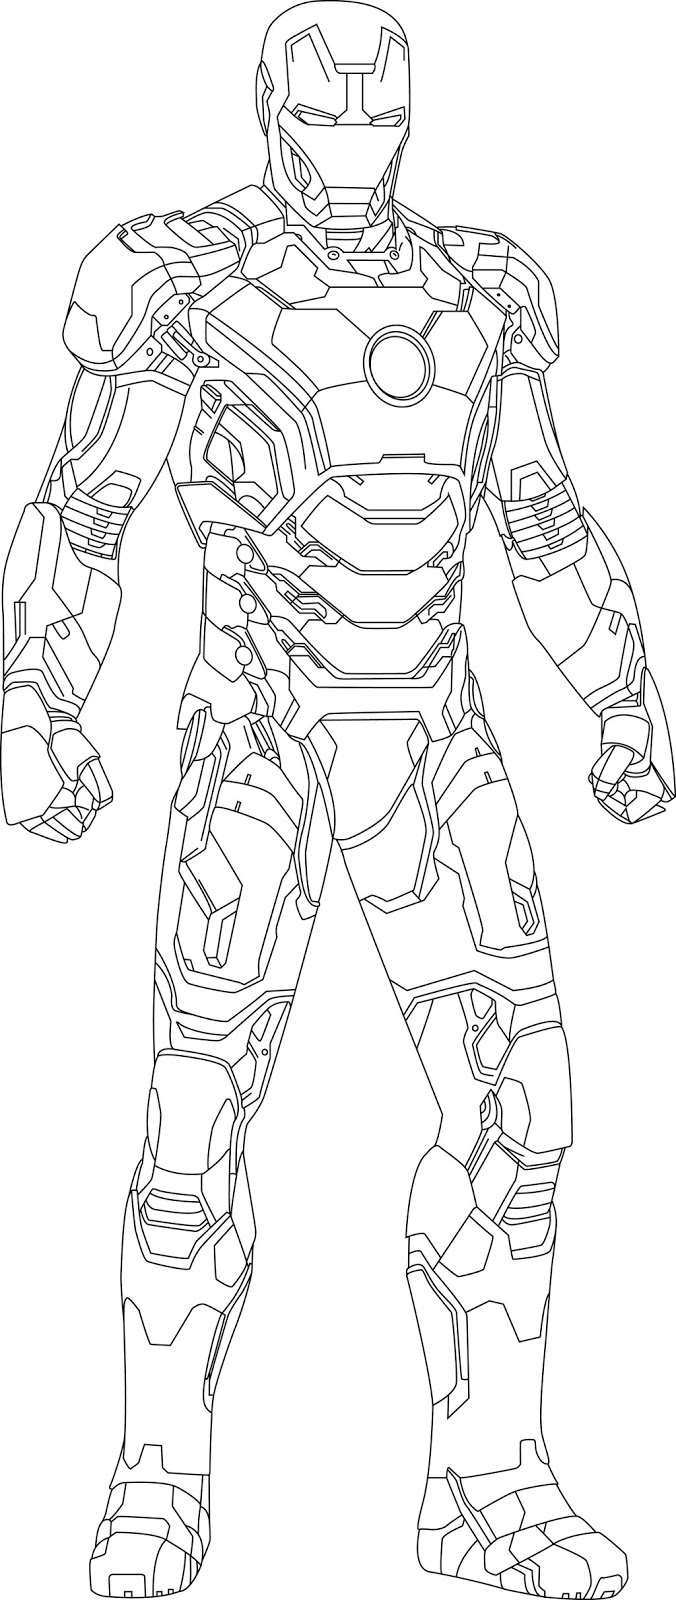 avengers iron man coloring pages coloring pages for kids free images iron man avengers iron pages coloring avengers man